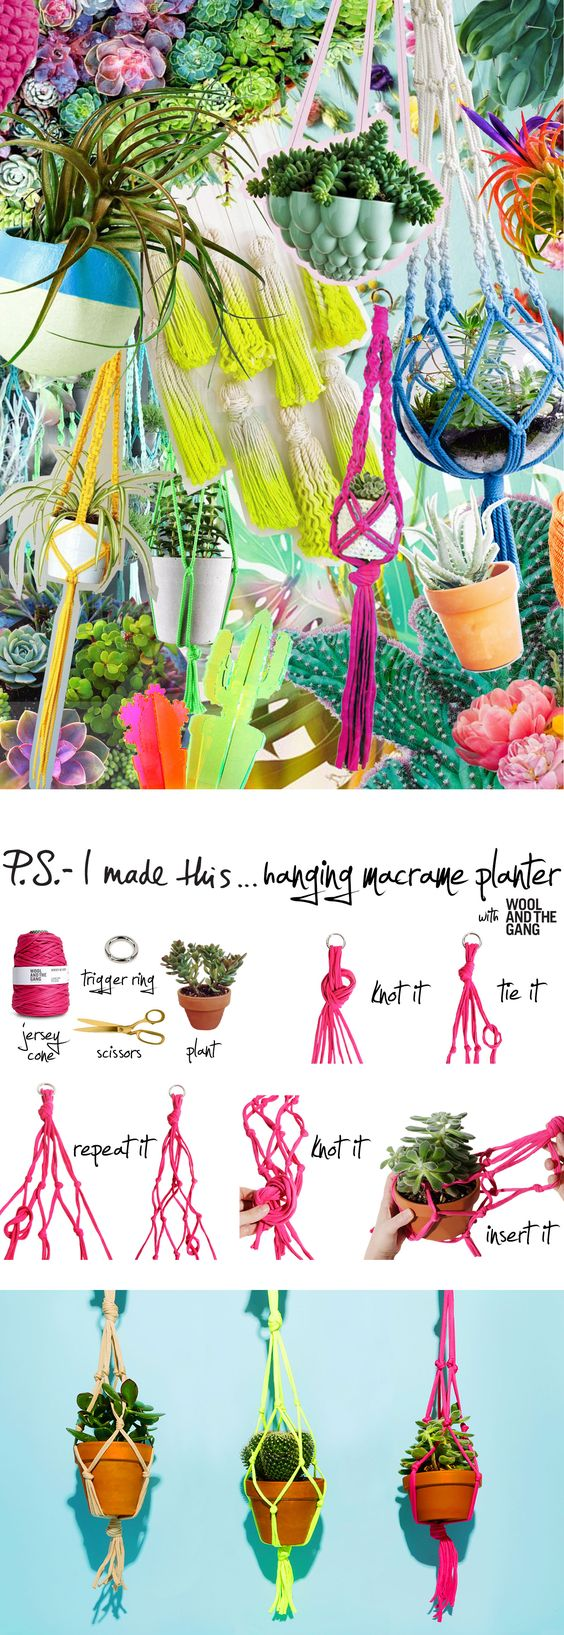 diy-hanging-planter-pots-6